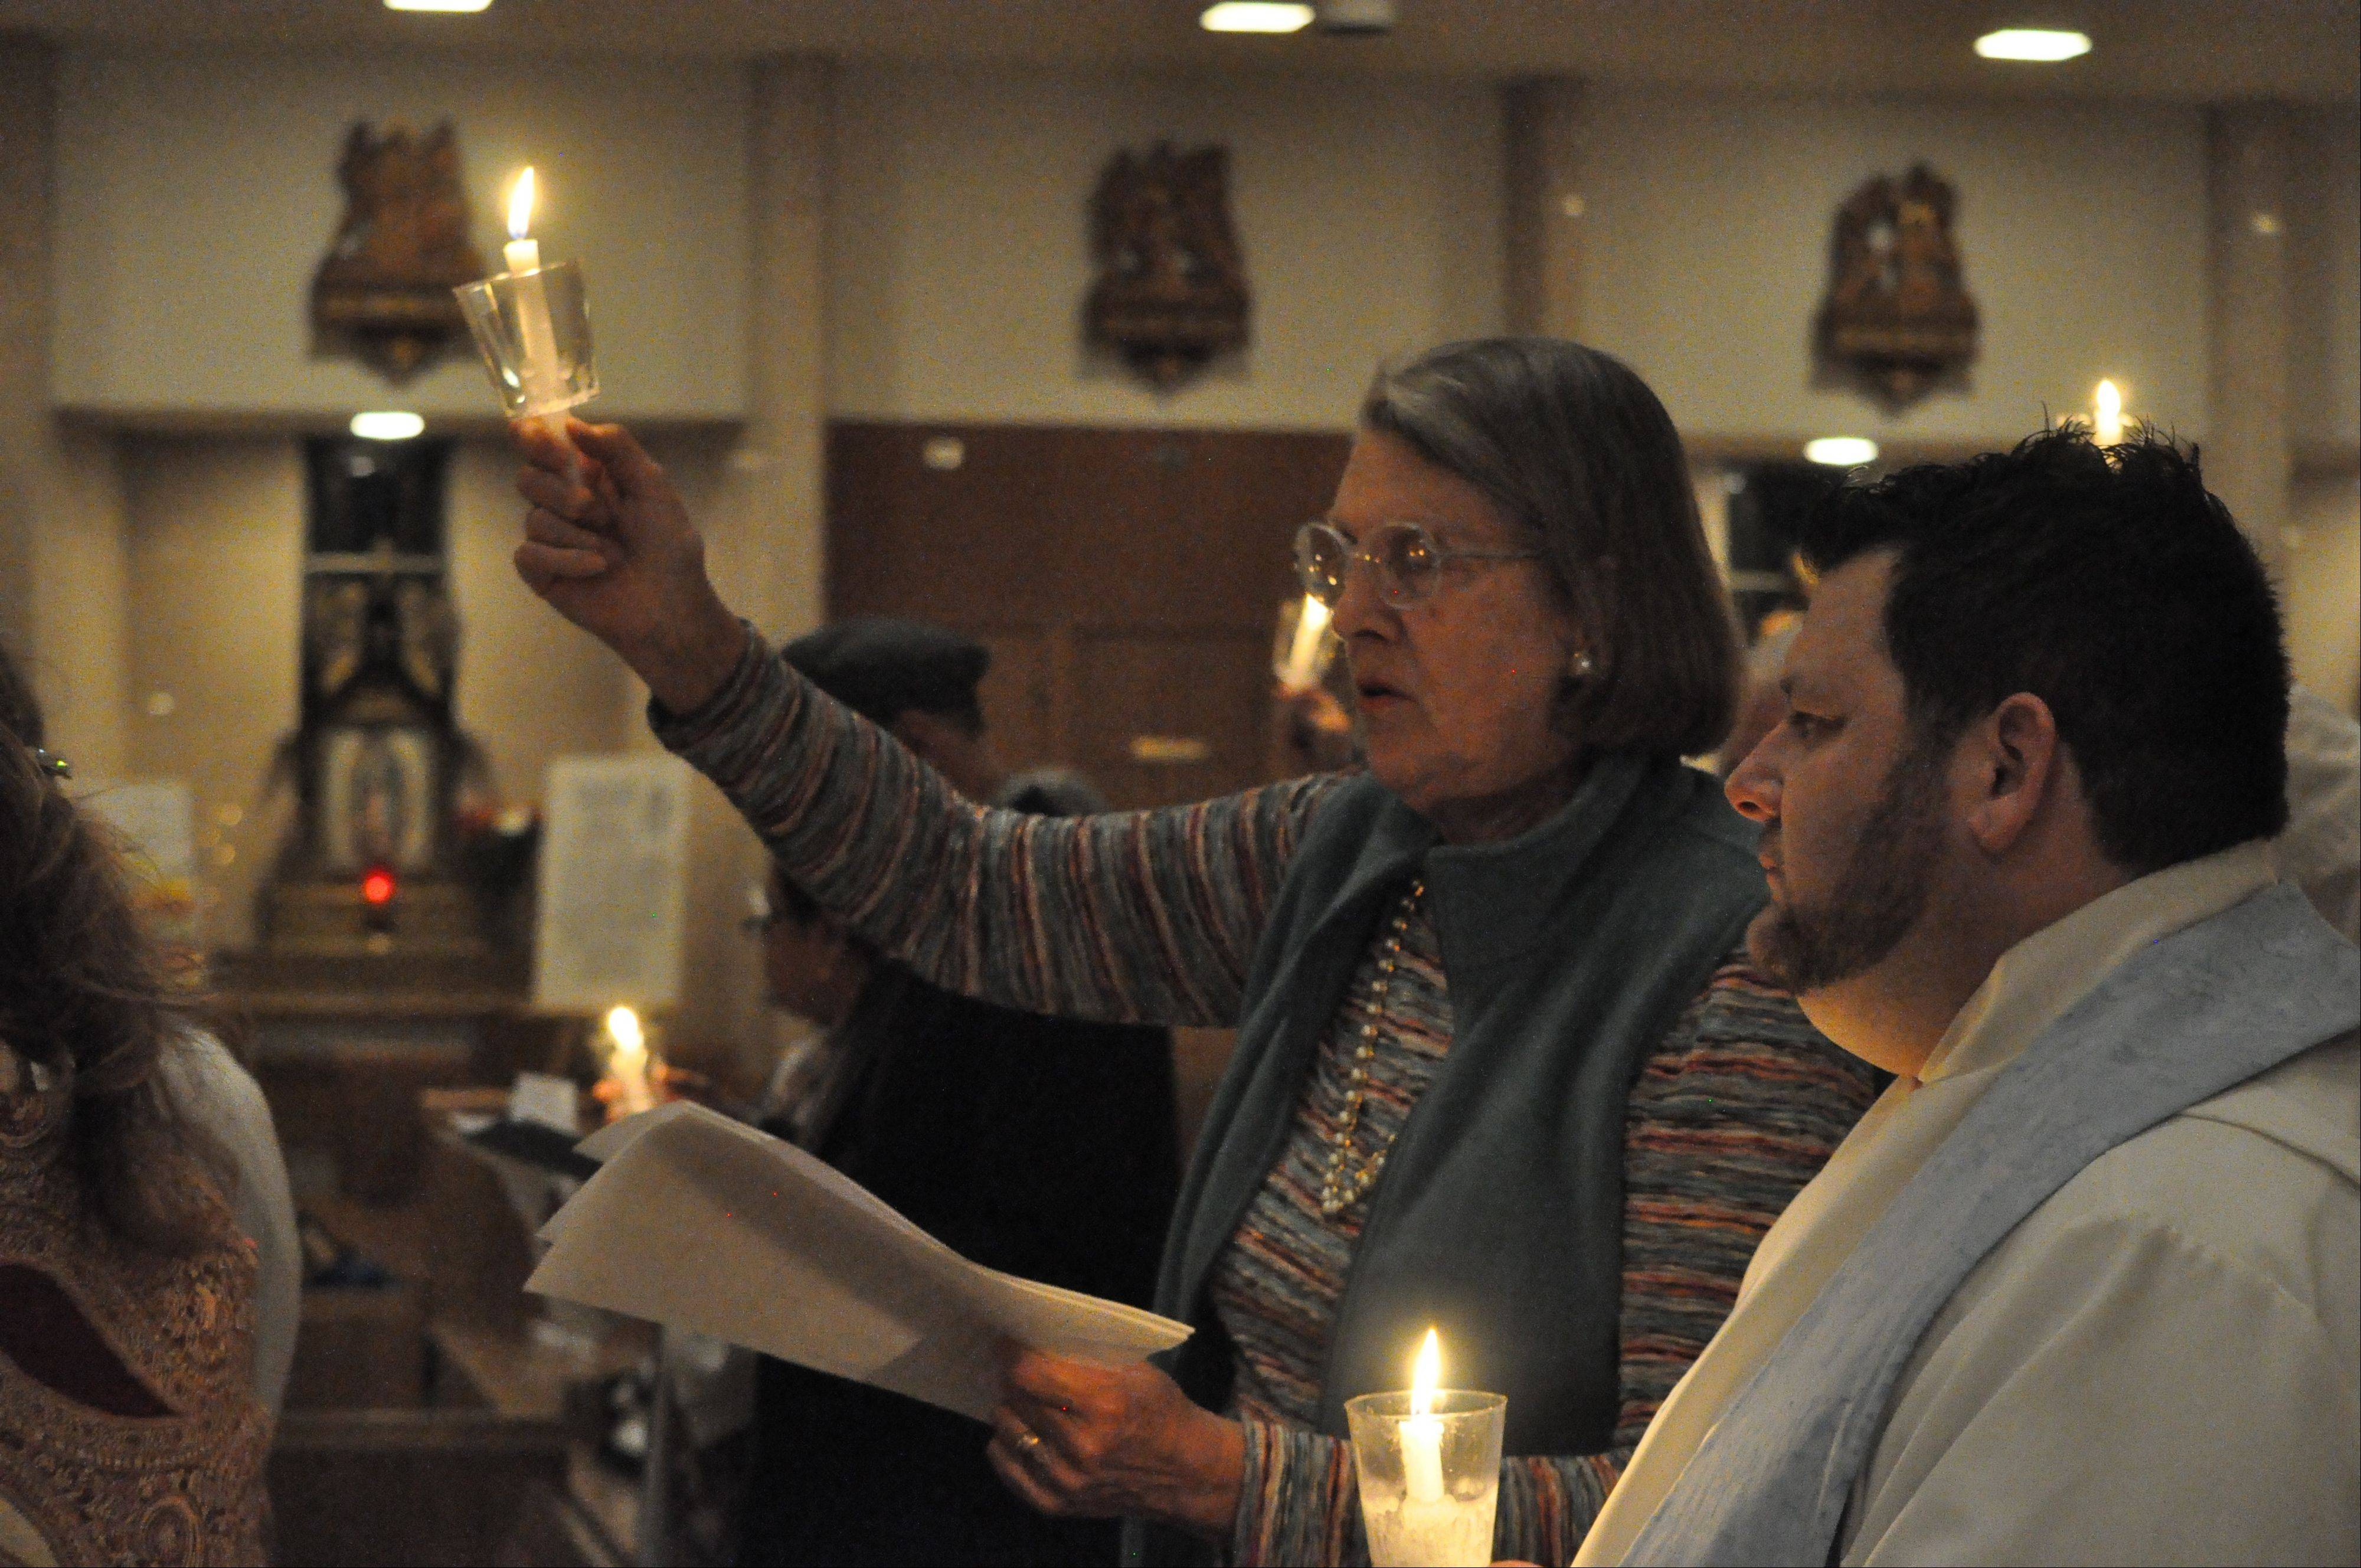 Emmy Lou John of Aurora's Wesley United Methodist Church, left, and the Rev. Brian Wise pastor at St. Mark's Lutheran Church, light candles for world peace and justice during a fifth annual Thanksgiving interfaith service at St. Joseph Catholic Church in Aurora Nov. 18.